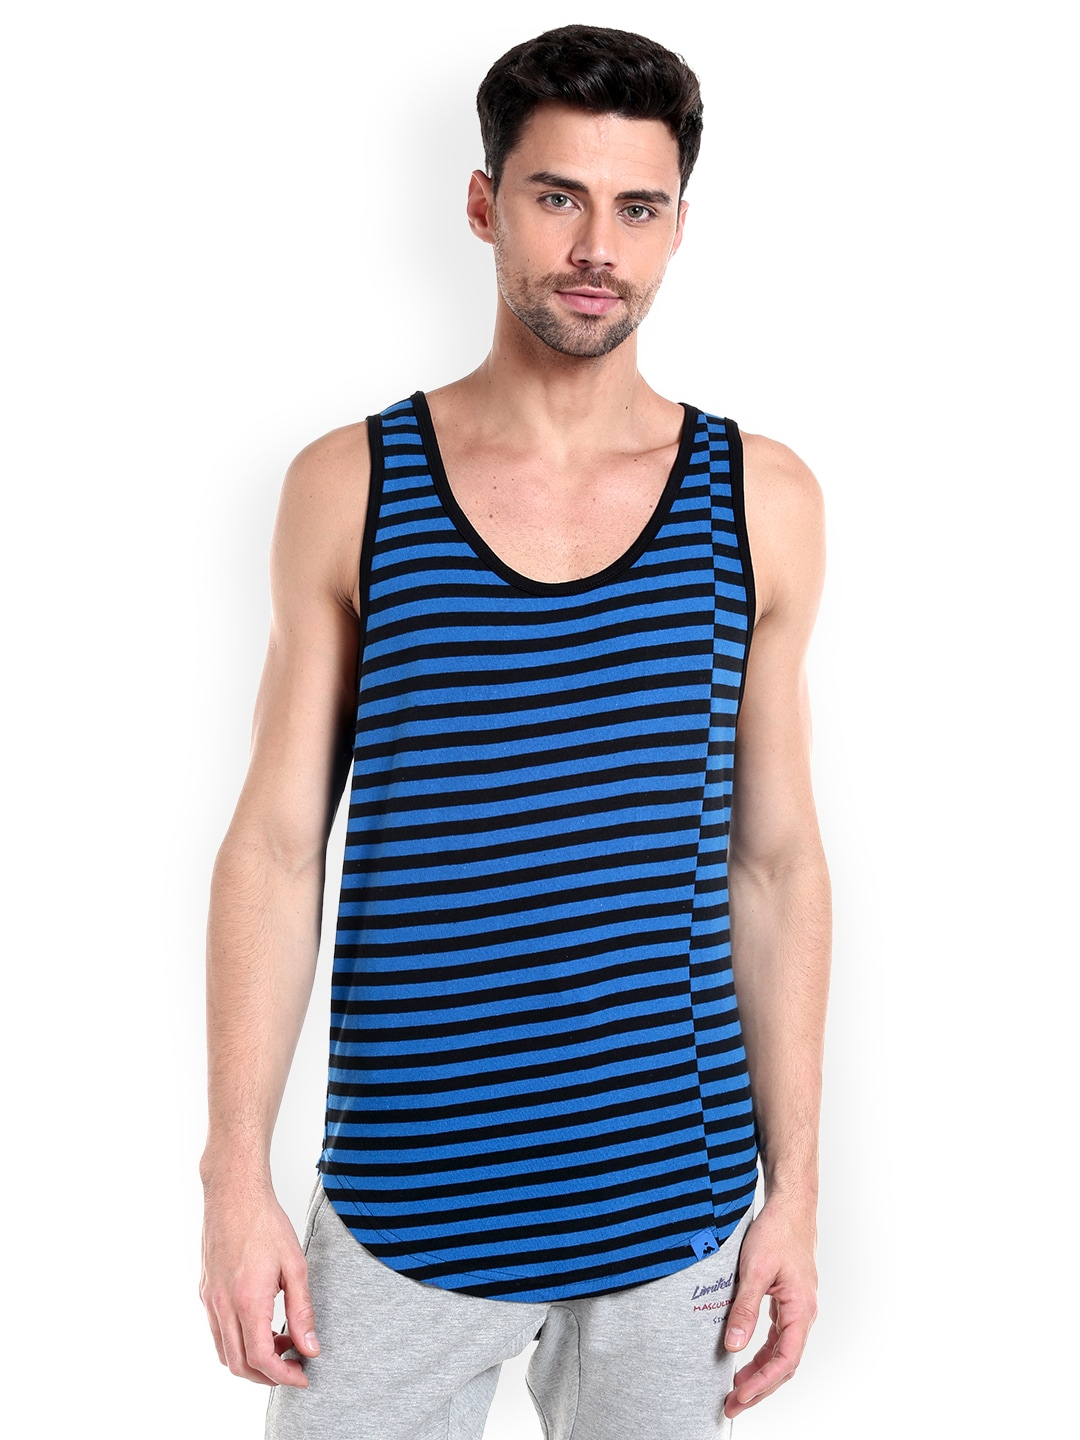 Masculino Latino Men Blue & Black Striped T-shirt MLF4030-A image